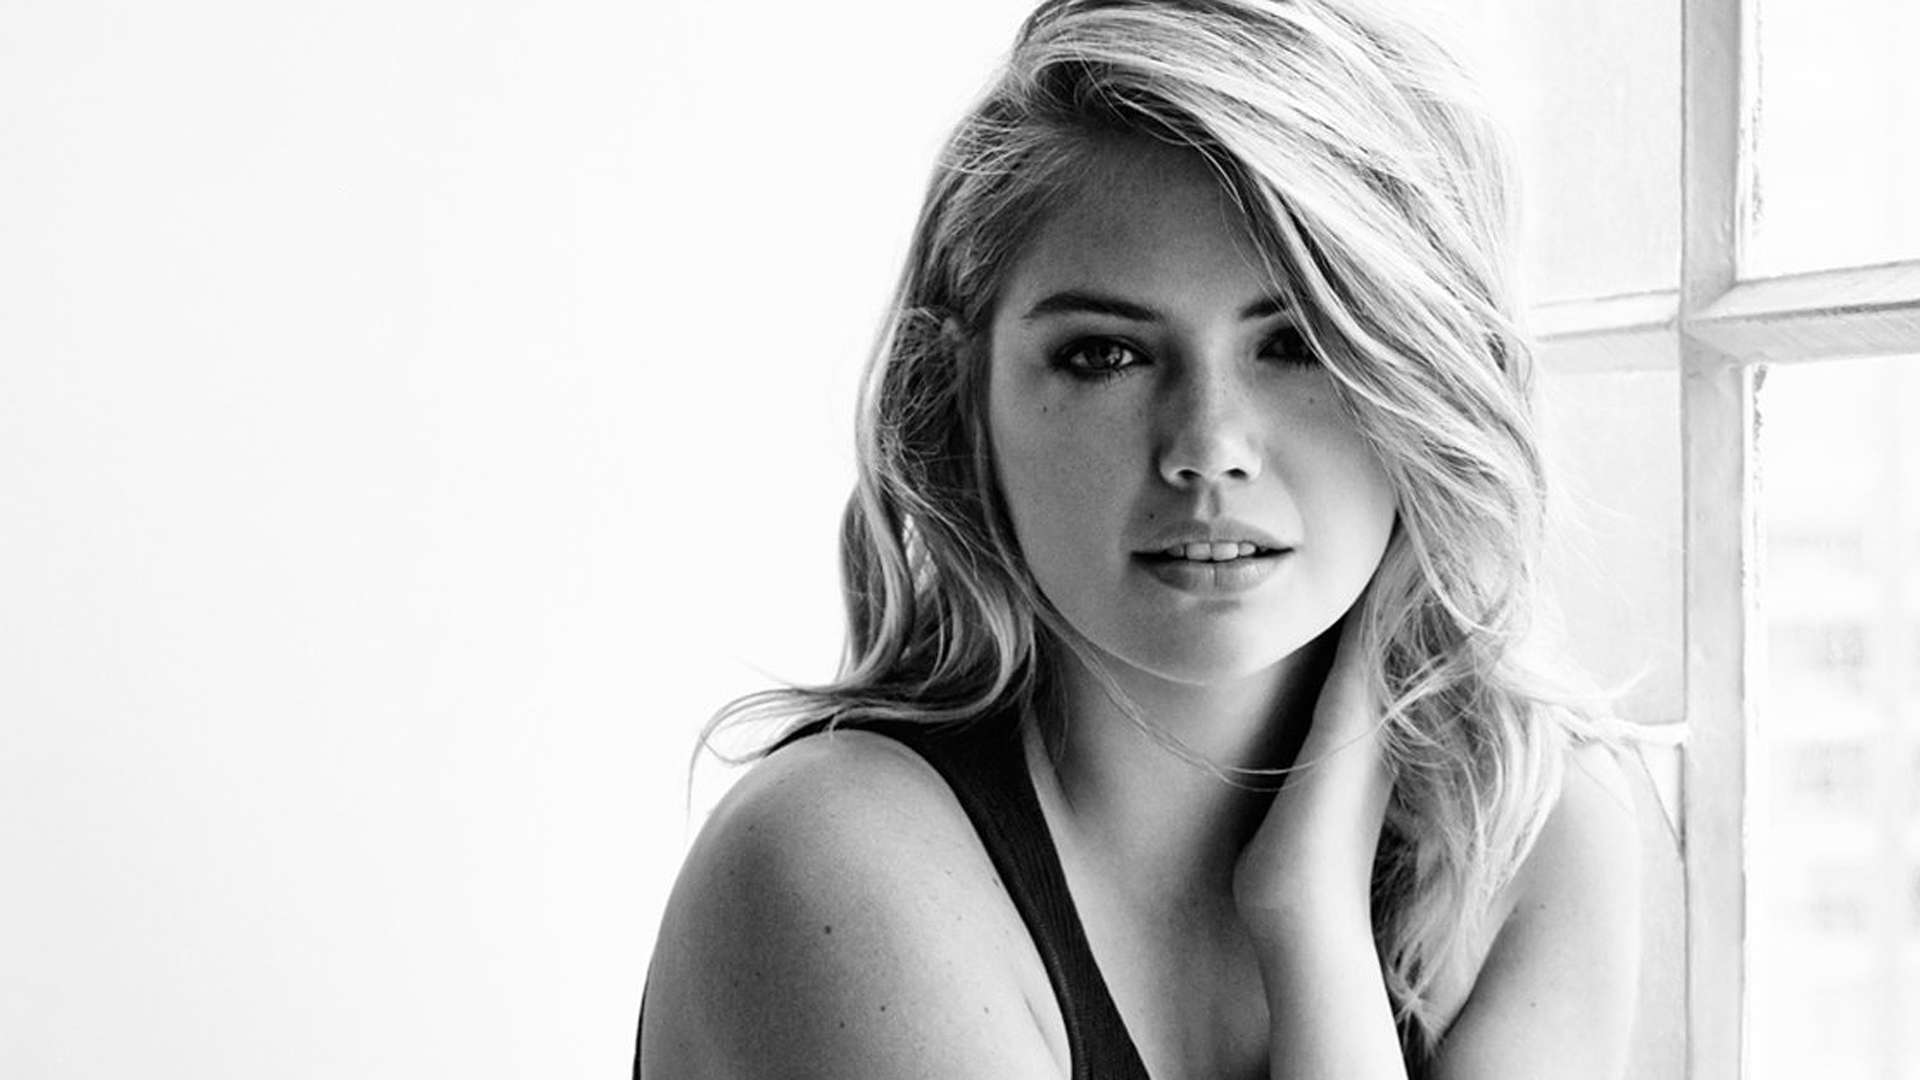 kate upton wallpaper download - photo #12